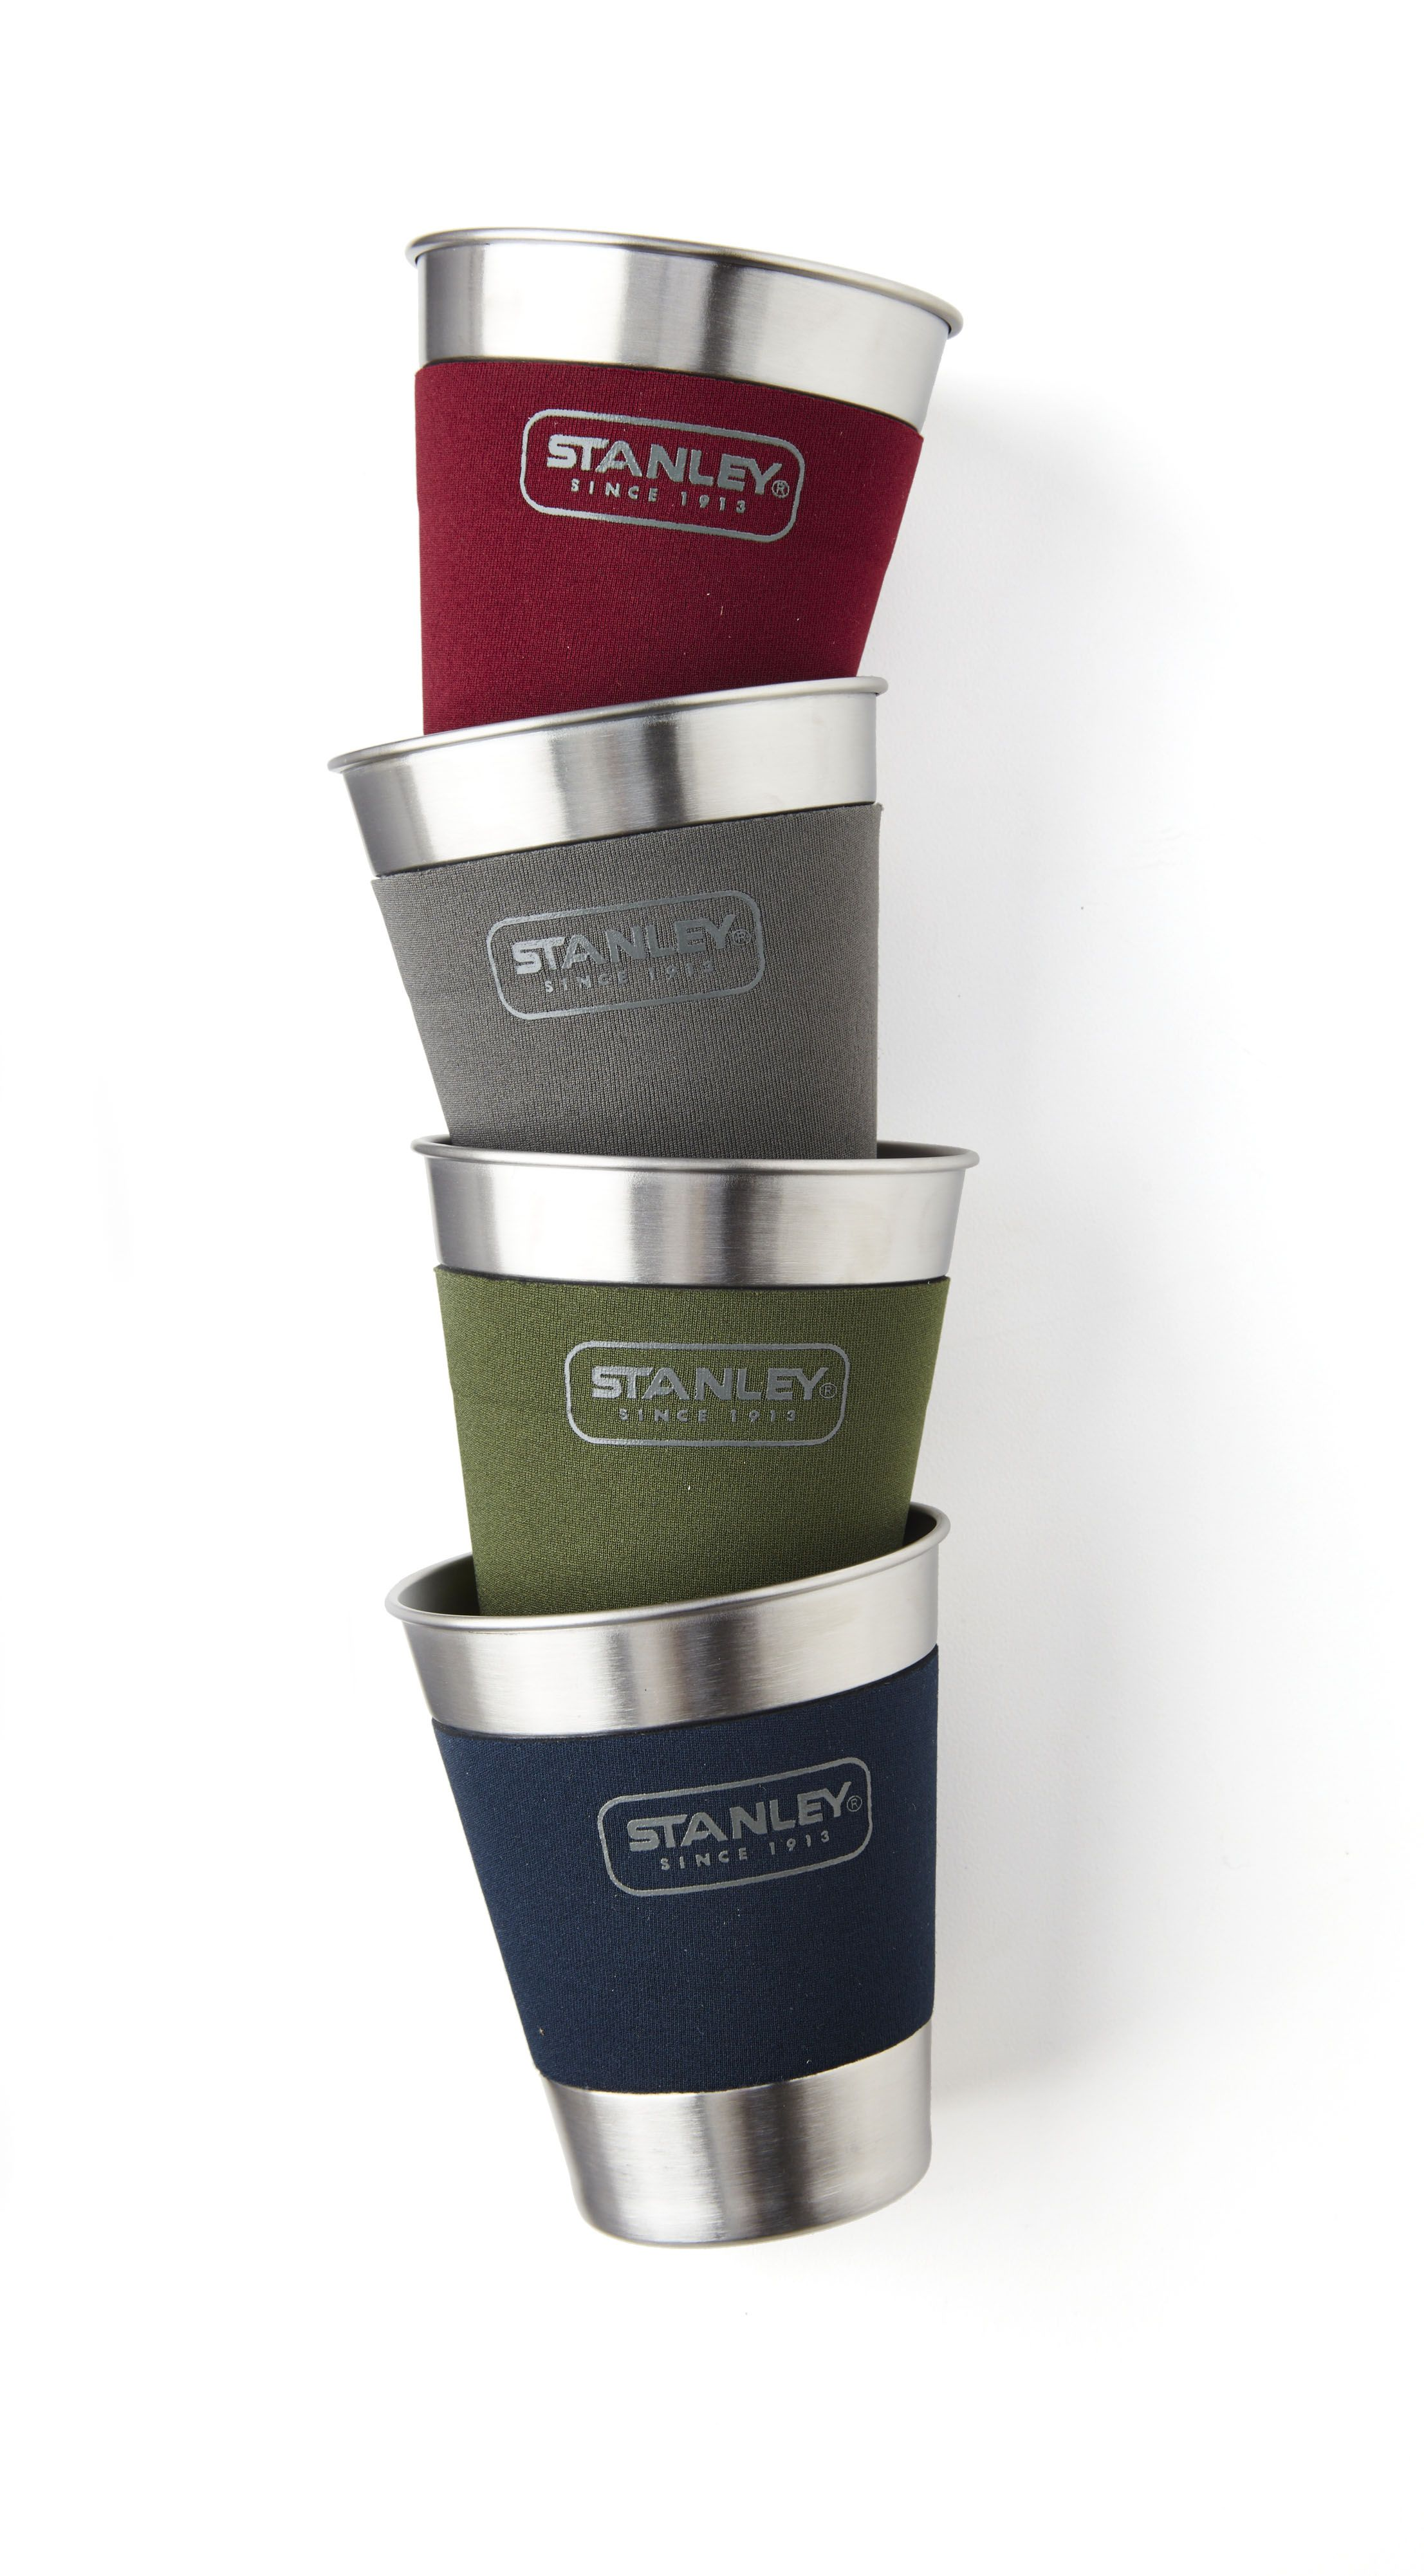 The Adventure Stacking Steel Tumbler set is party-prepared with four colored, neoprene sleeves to help keep track of drinks.